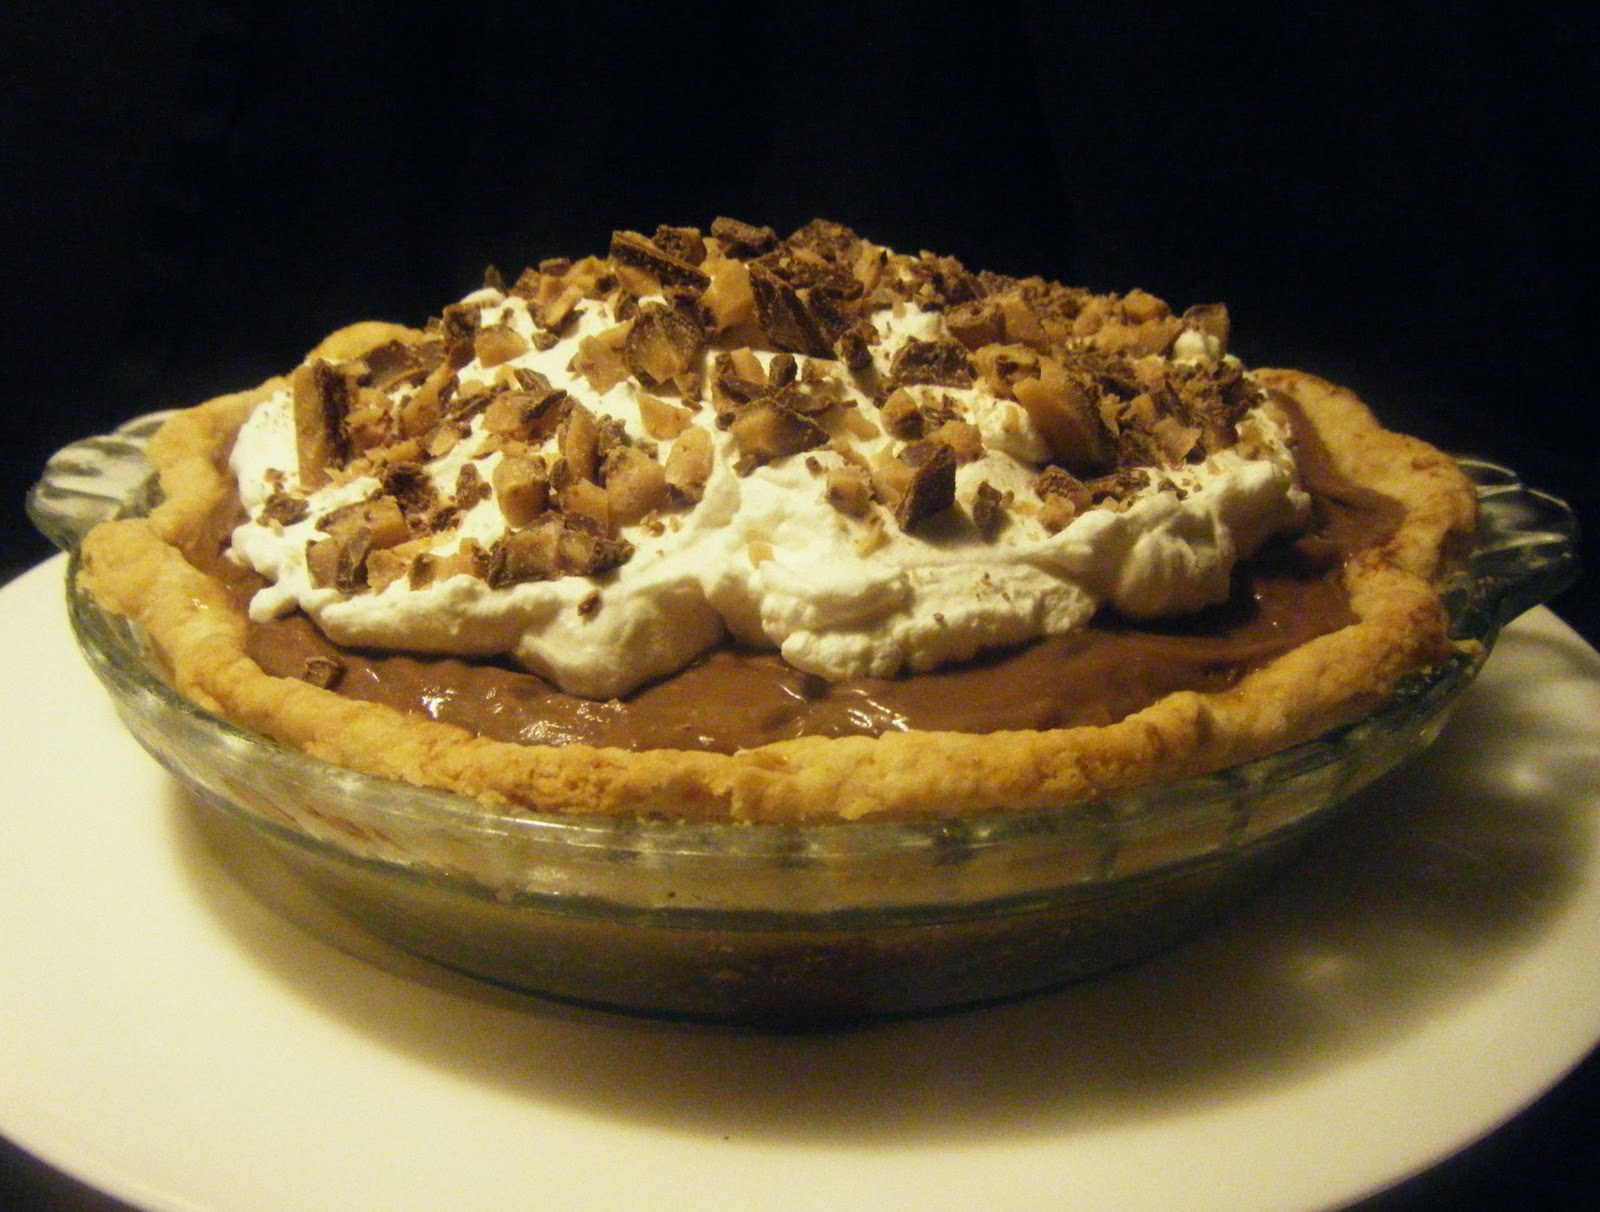 west side baker: ABC: Caramel Chocolate Cream Pie